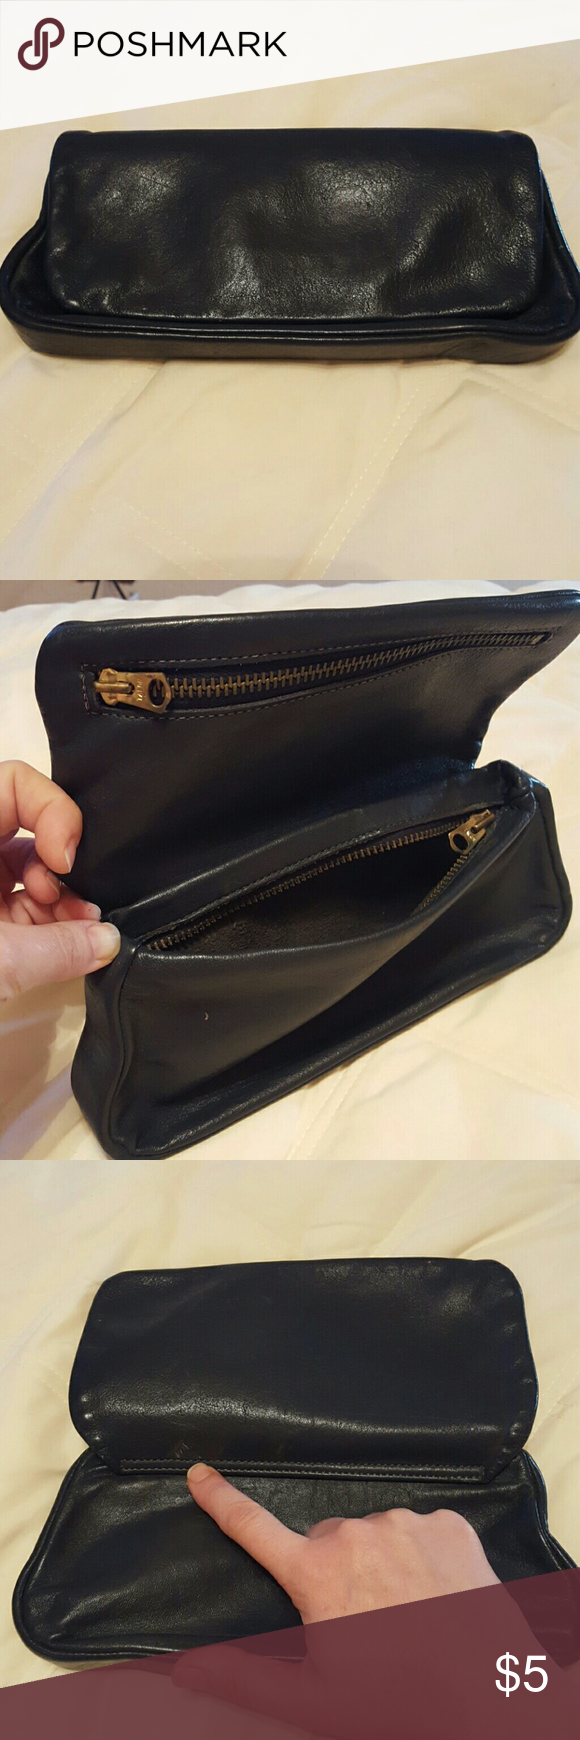 Small dark navy leather clutch. Unbranded but similar to Coach. Small wear marks as shown in photos. Bags Clutches & Wristlets